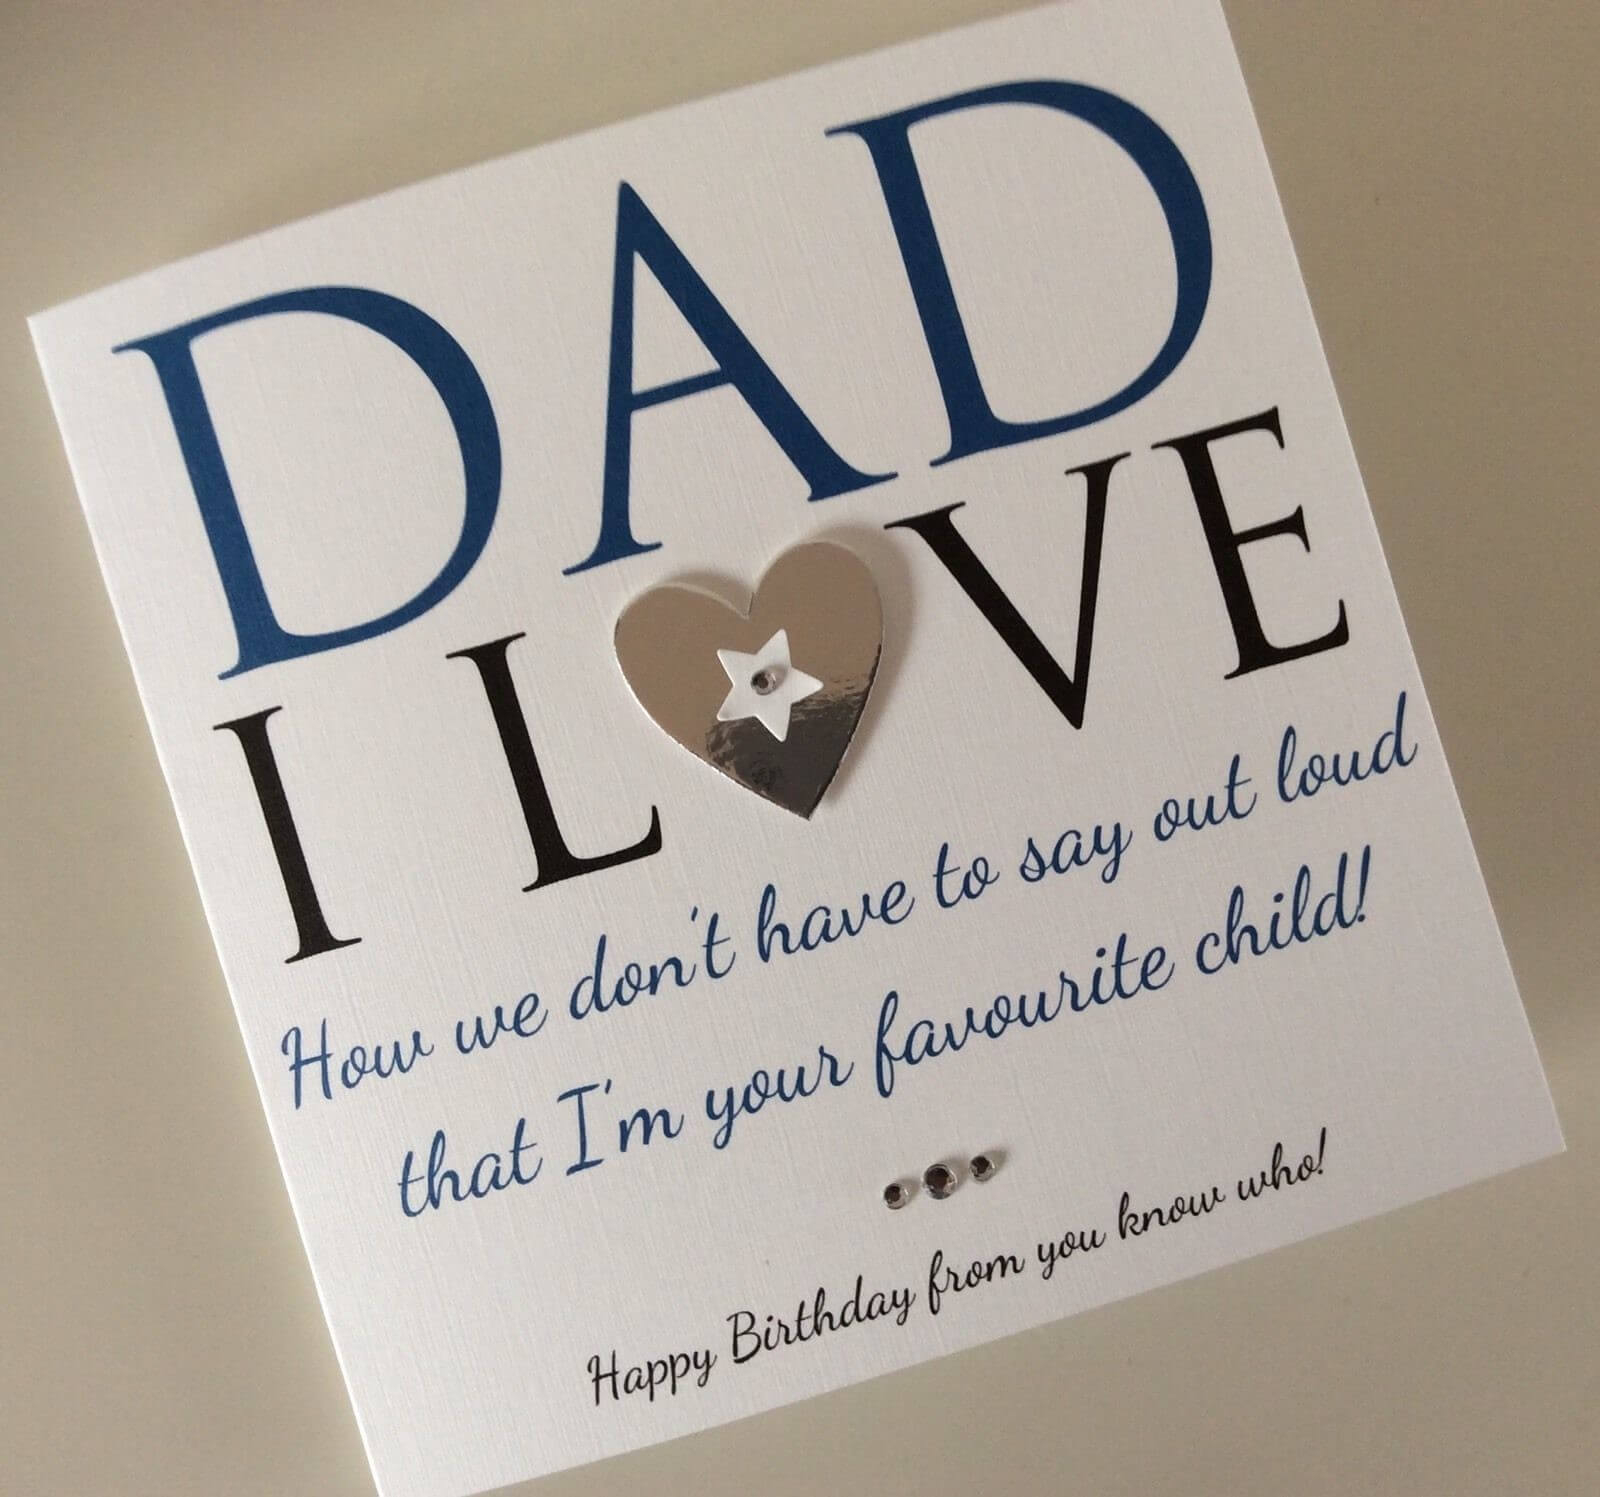 Ideas For Birthday Cards For Dads 98 Birthday Greetings Cards For Dad Dad Birthday Card From Kids